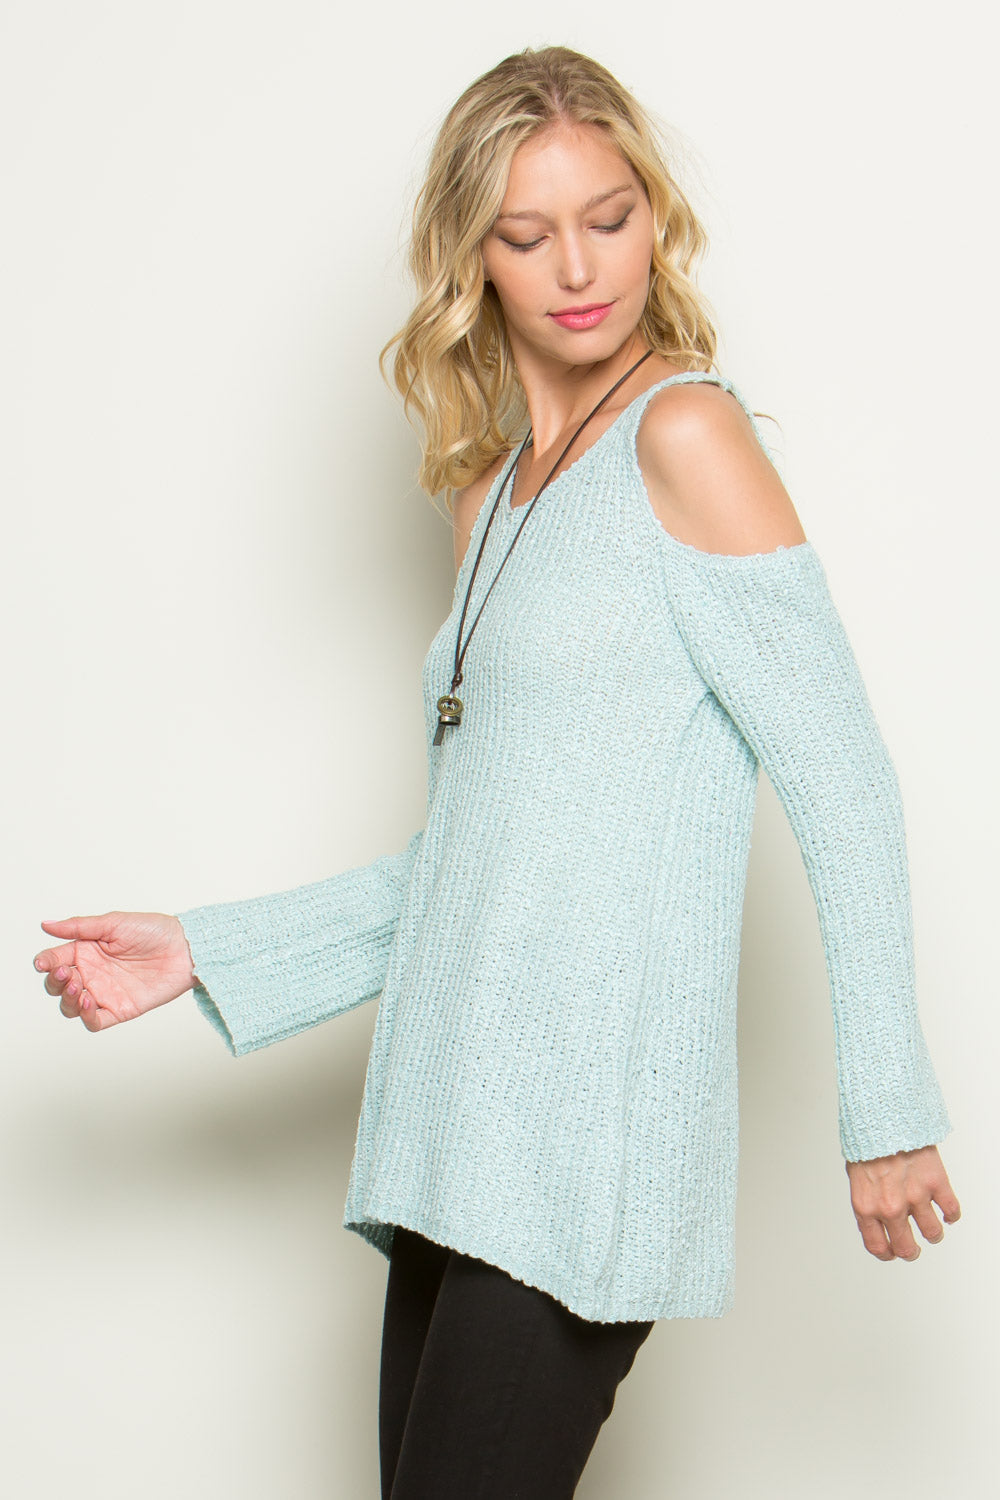 Soft Knit Light Weight Sweater